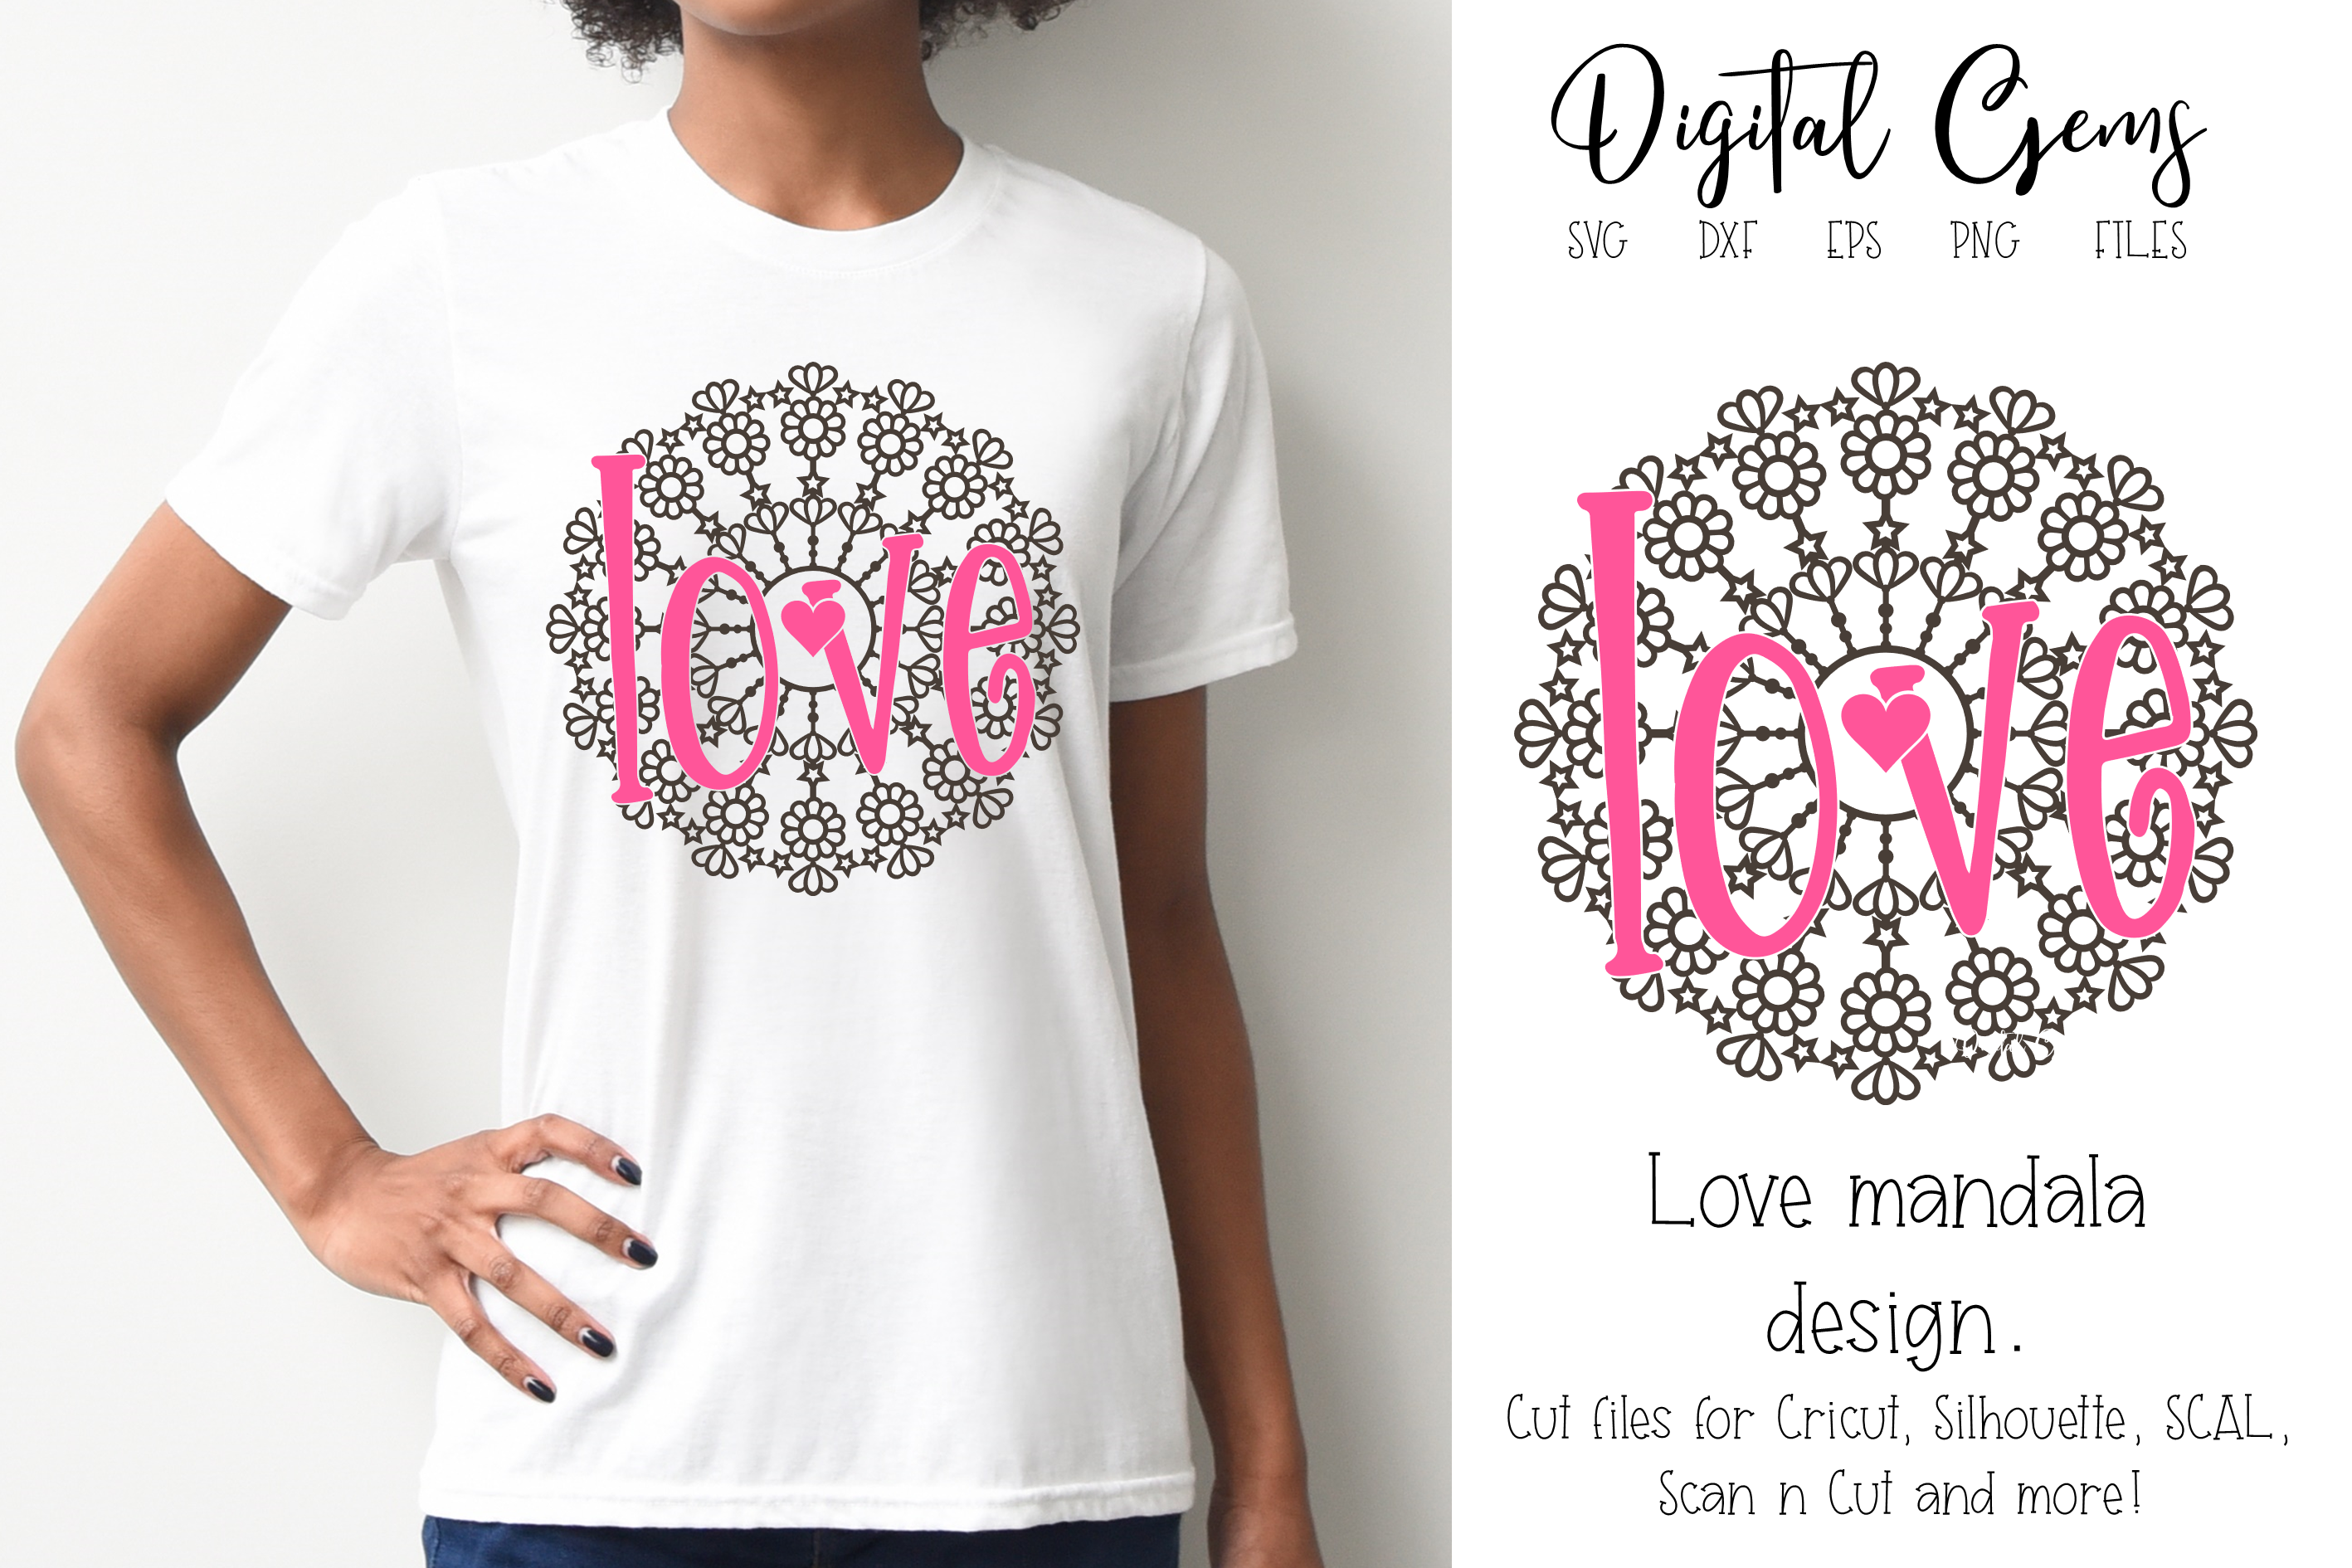 Download Free Love Mandala Design Graphic By Digital Gems Creative Fabrica for Cricut Explore, Silhouette and other cutting machines.